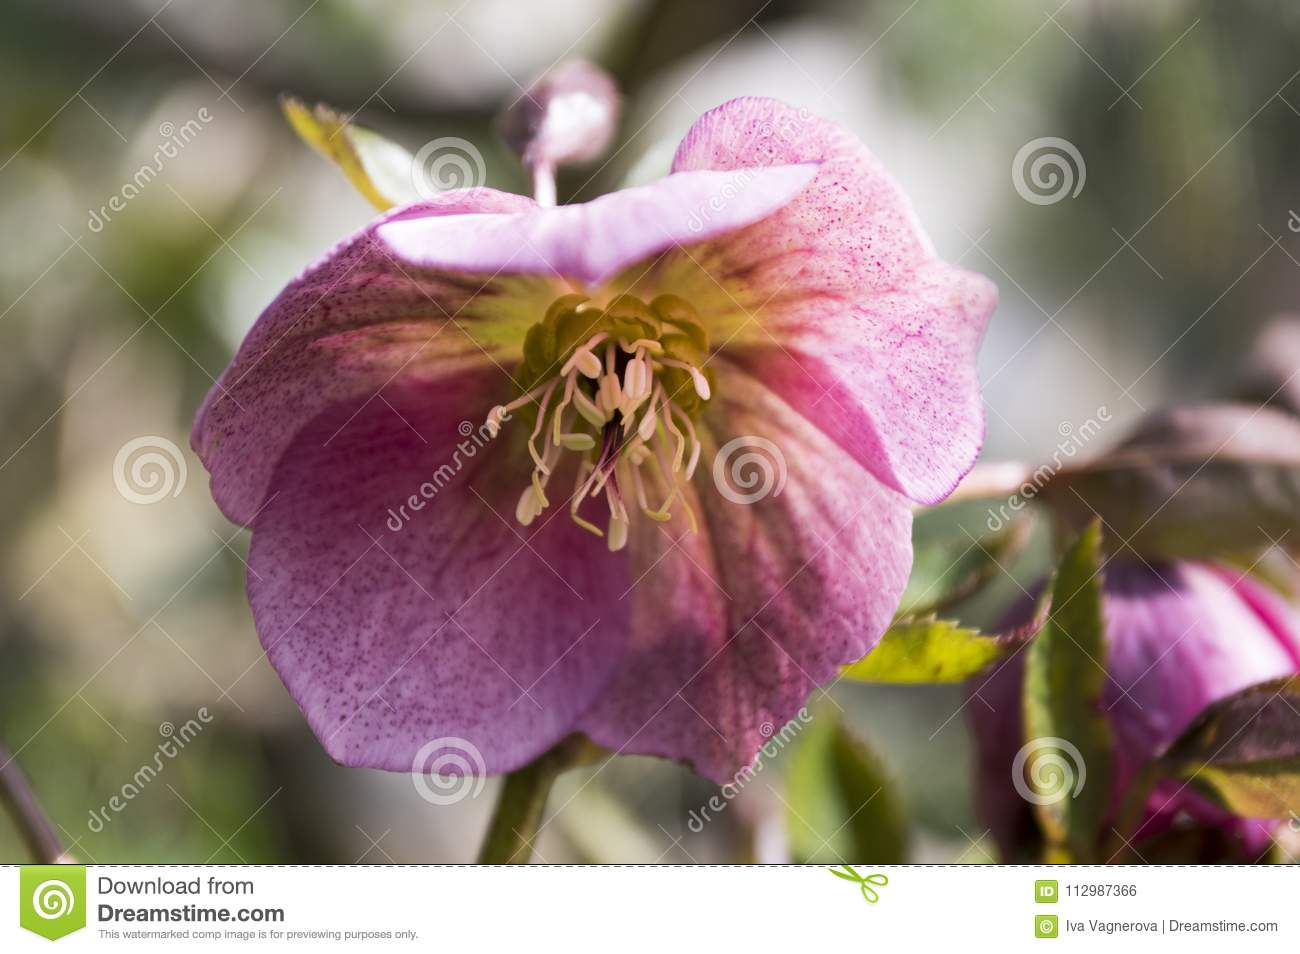 Helleborus niger ornamental early spring flower in bloom in sunlight